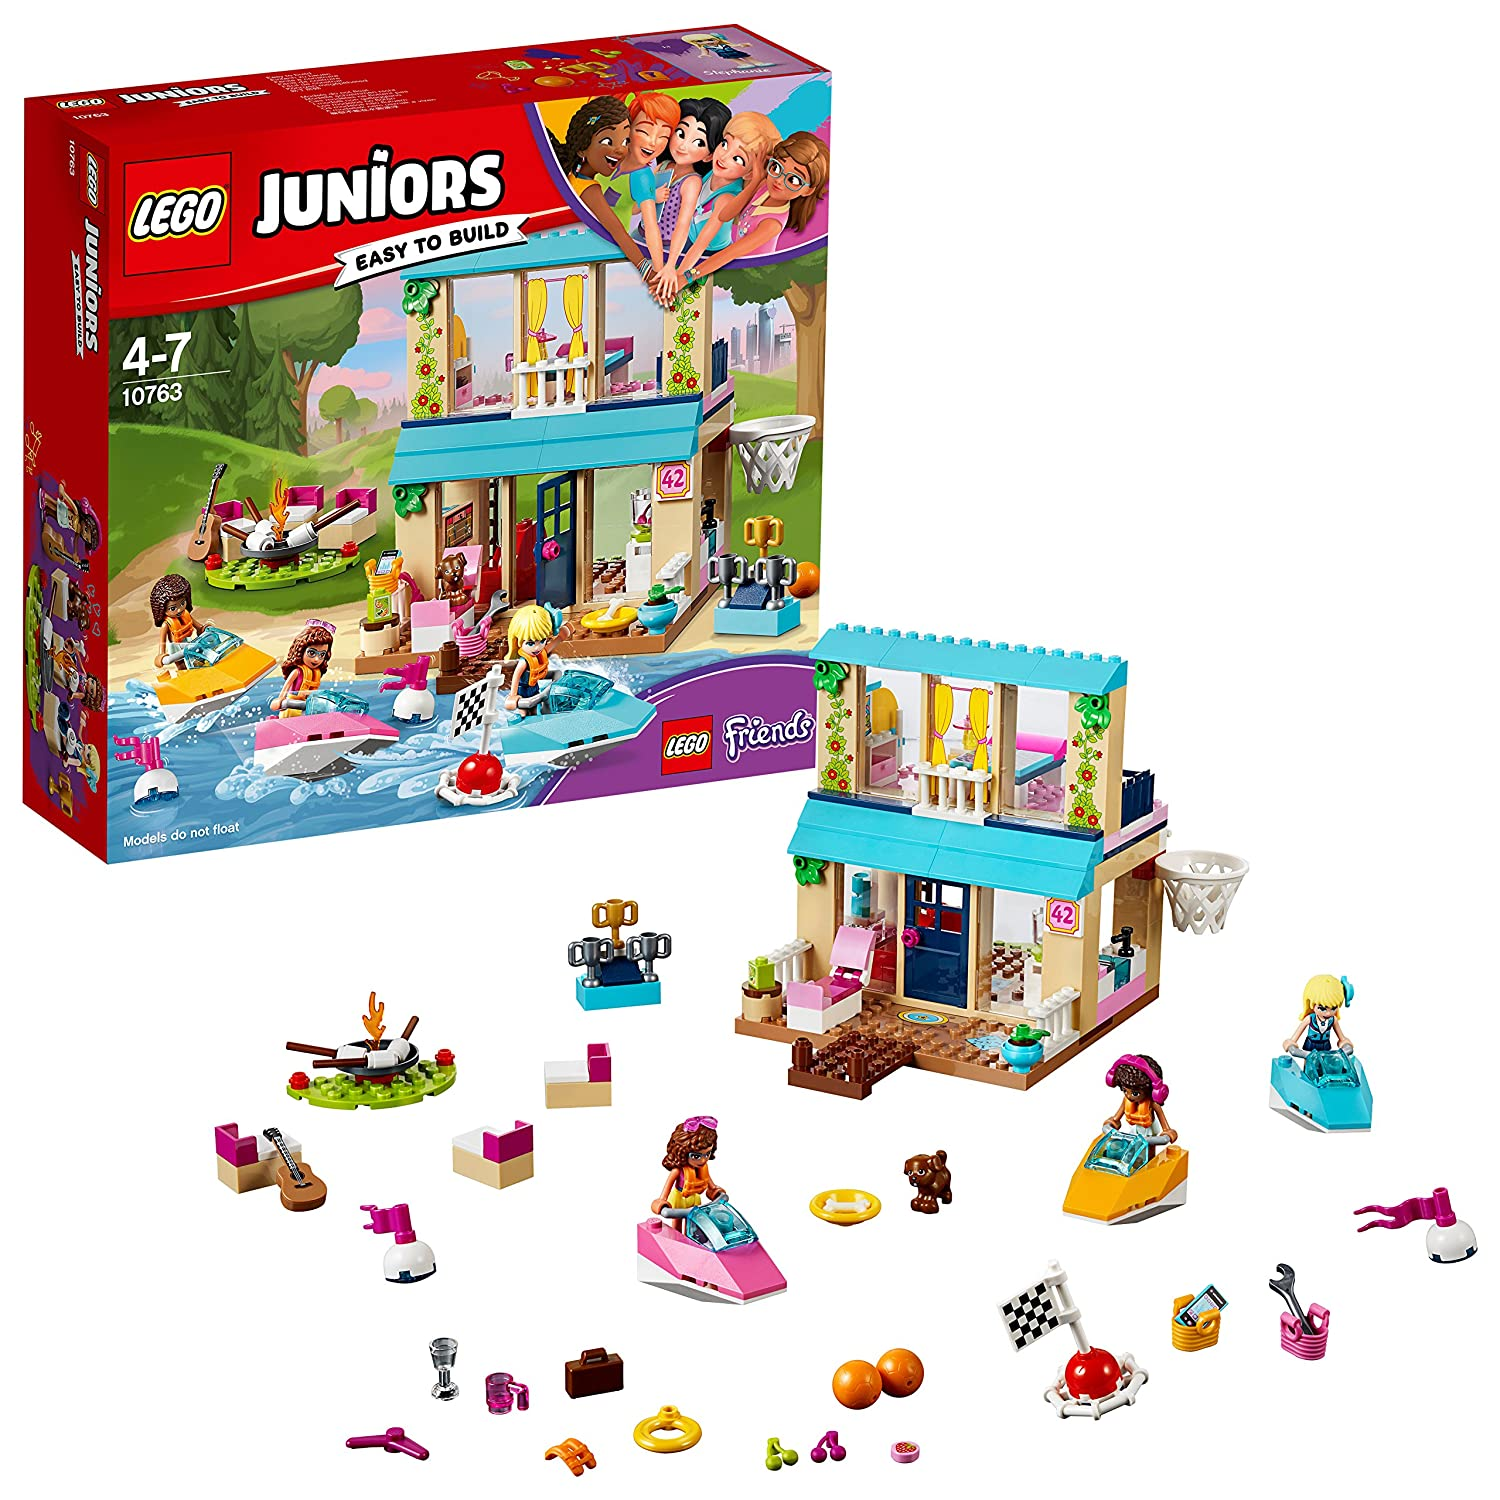 LEGO 10763 Juniors Stephanie's Lakeside House, Andrea and Olivia Mini Doll House, Building Toy for Girls